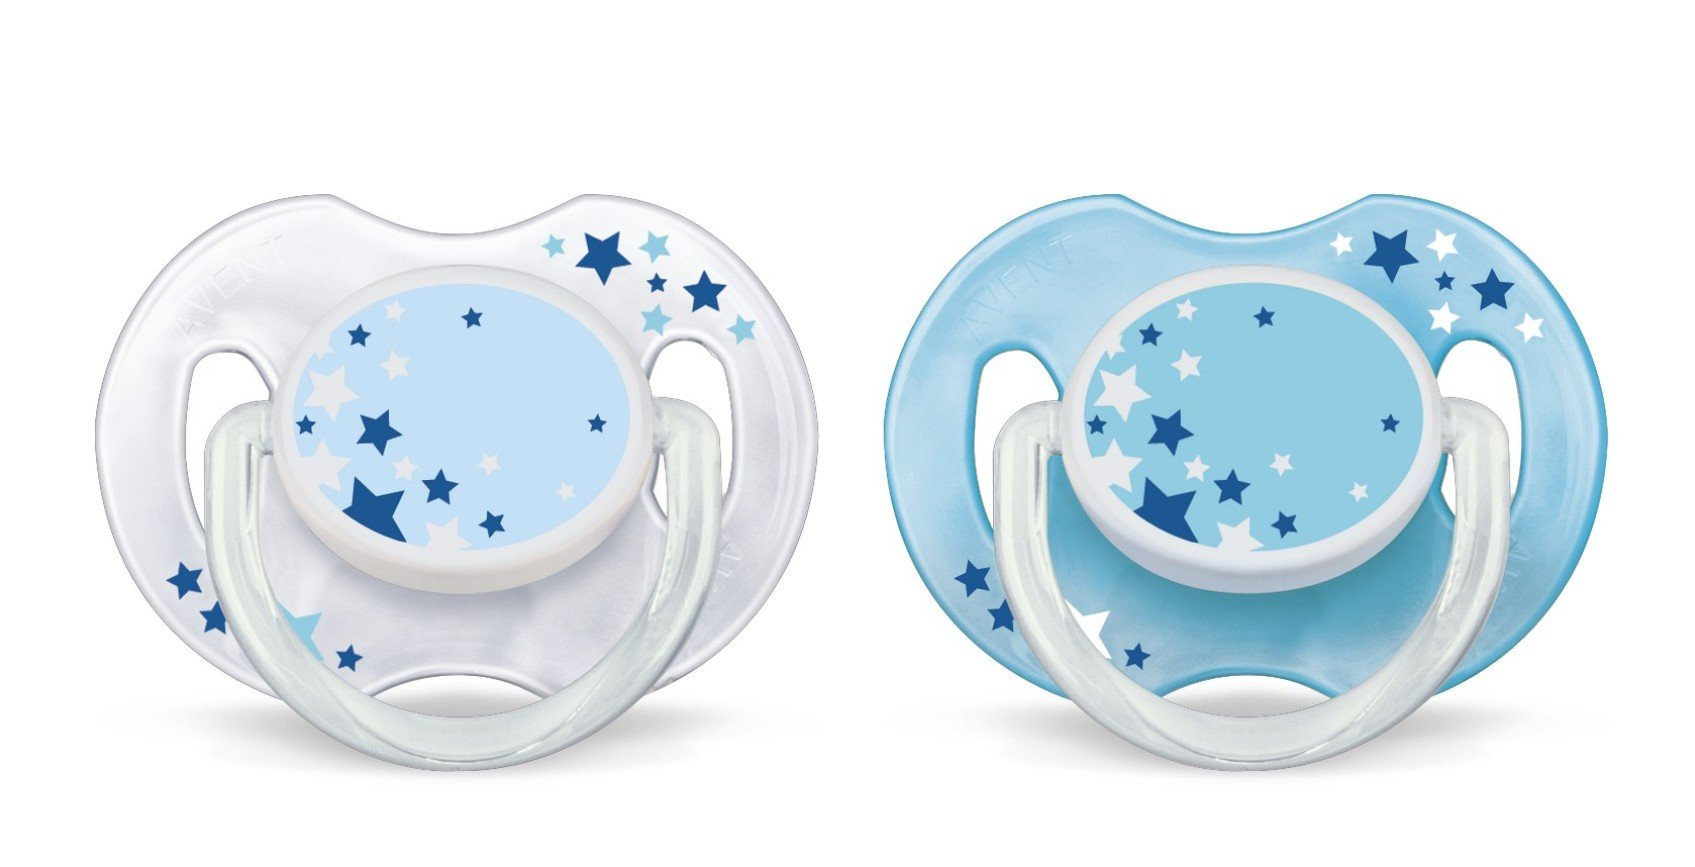 Philips AVENT SCF176/18 Glow in the Dark Night-Time Soother 0-6 Months (Colours May Vary), 2 Soothers 3